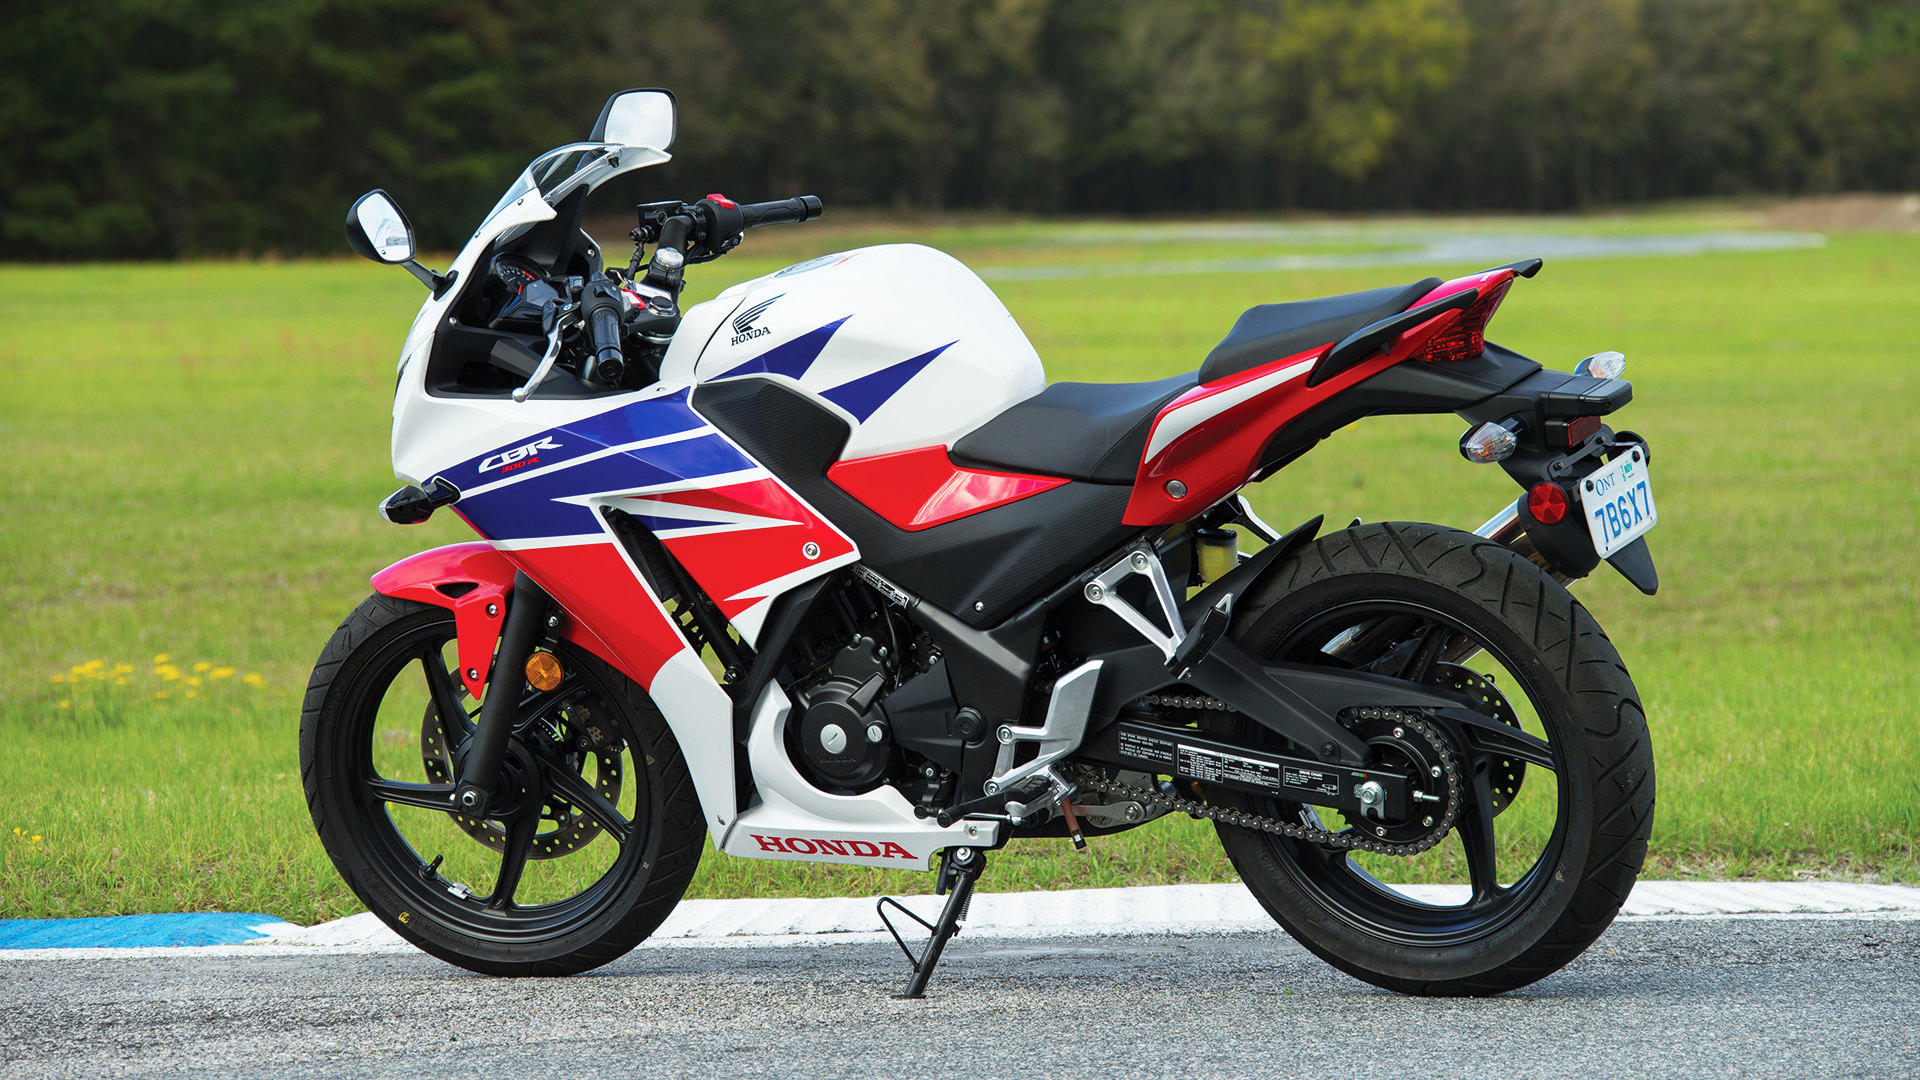 2015 Honda Cbr300r Review Specs Pictures Videos Pro Kevin Wiring Diagram Of Livo